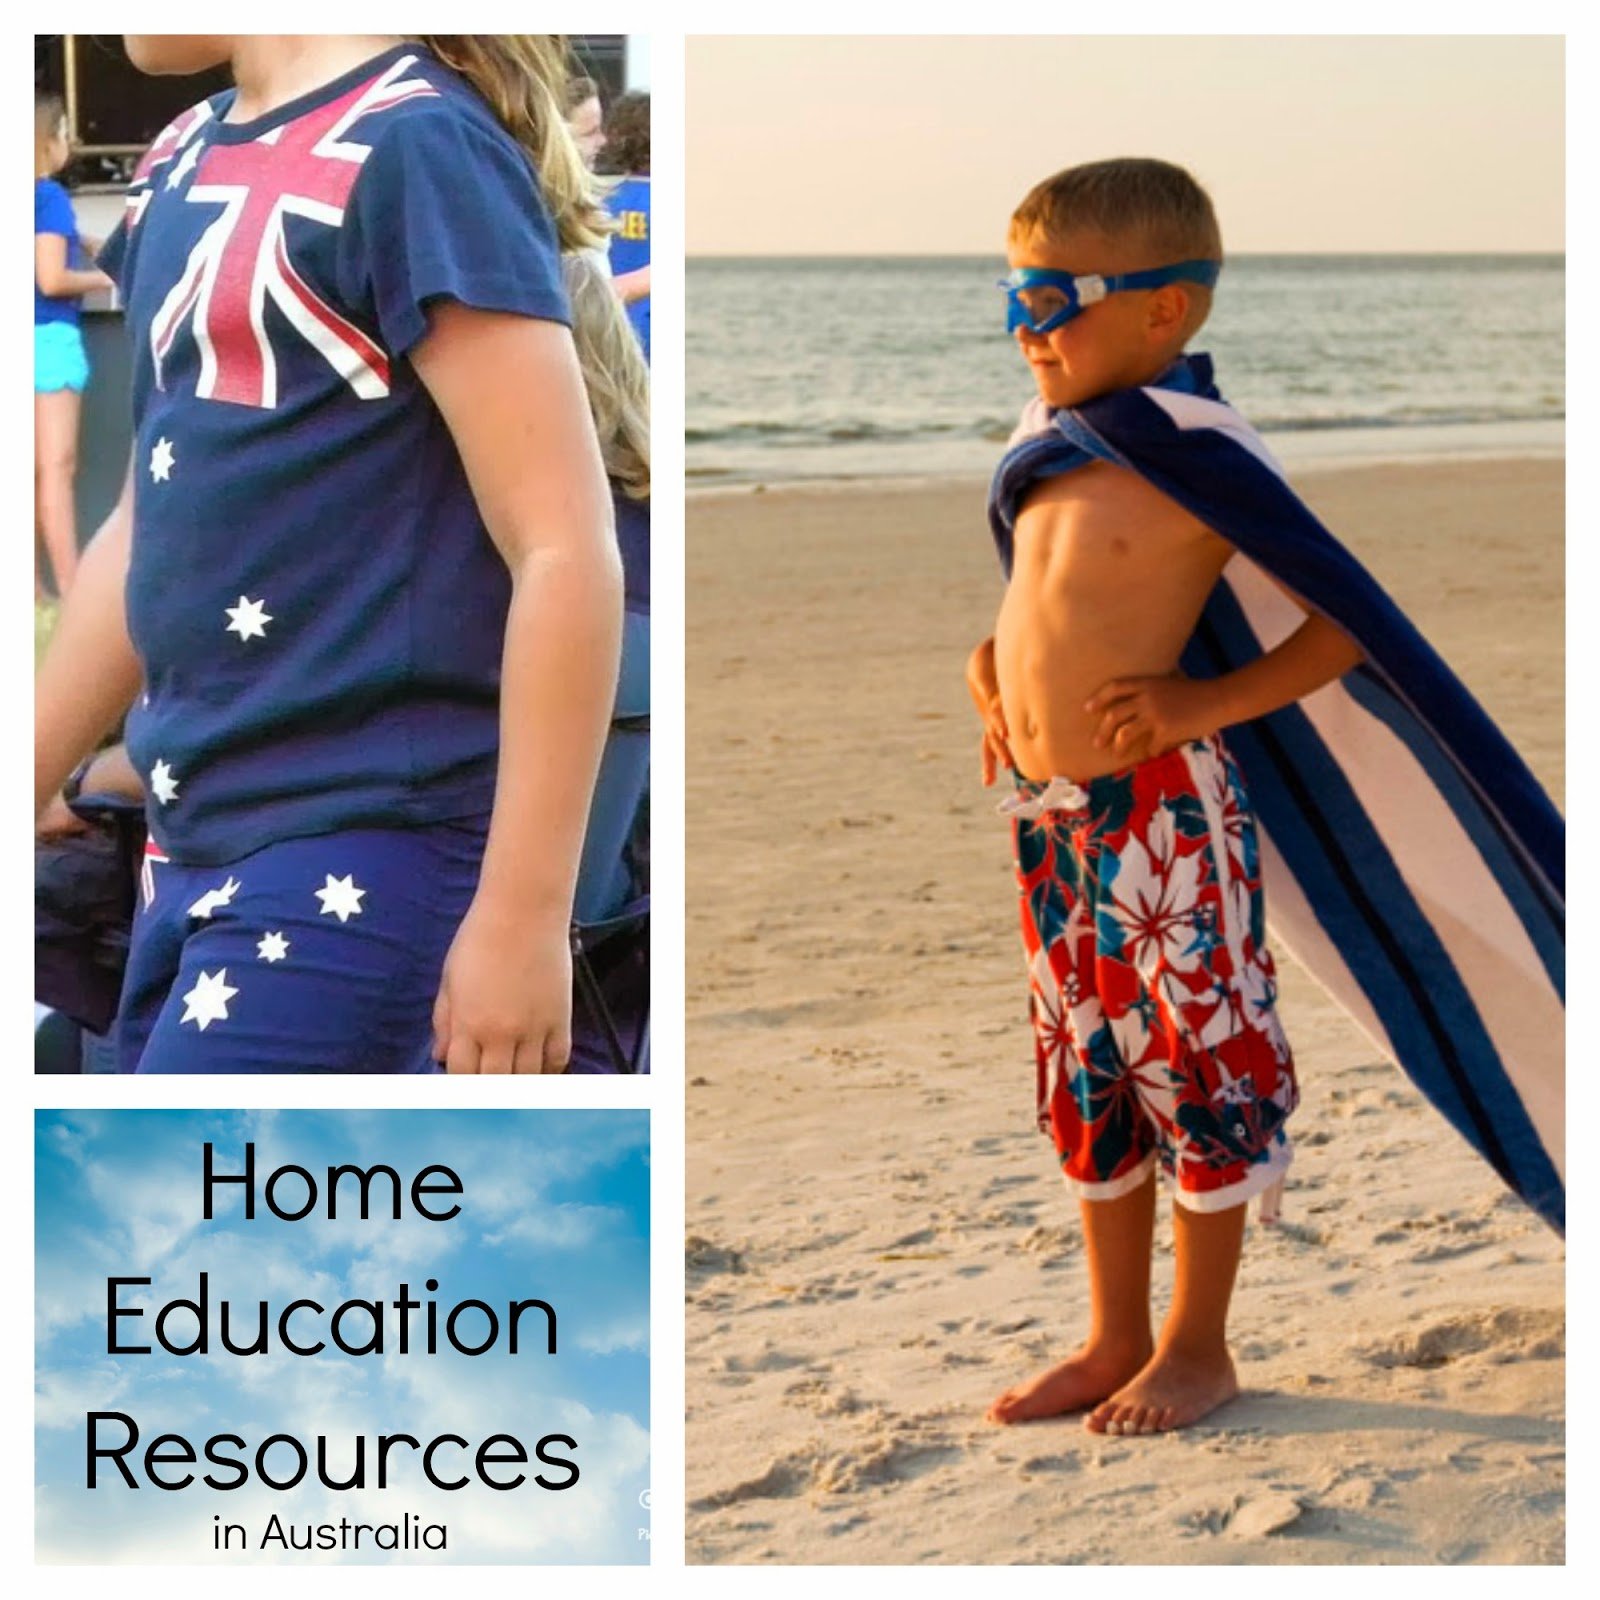 Home schooling Resources in Australia